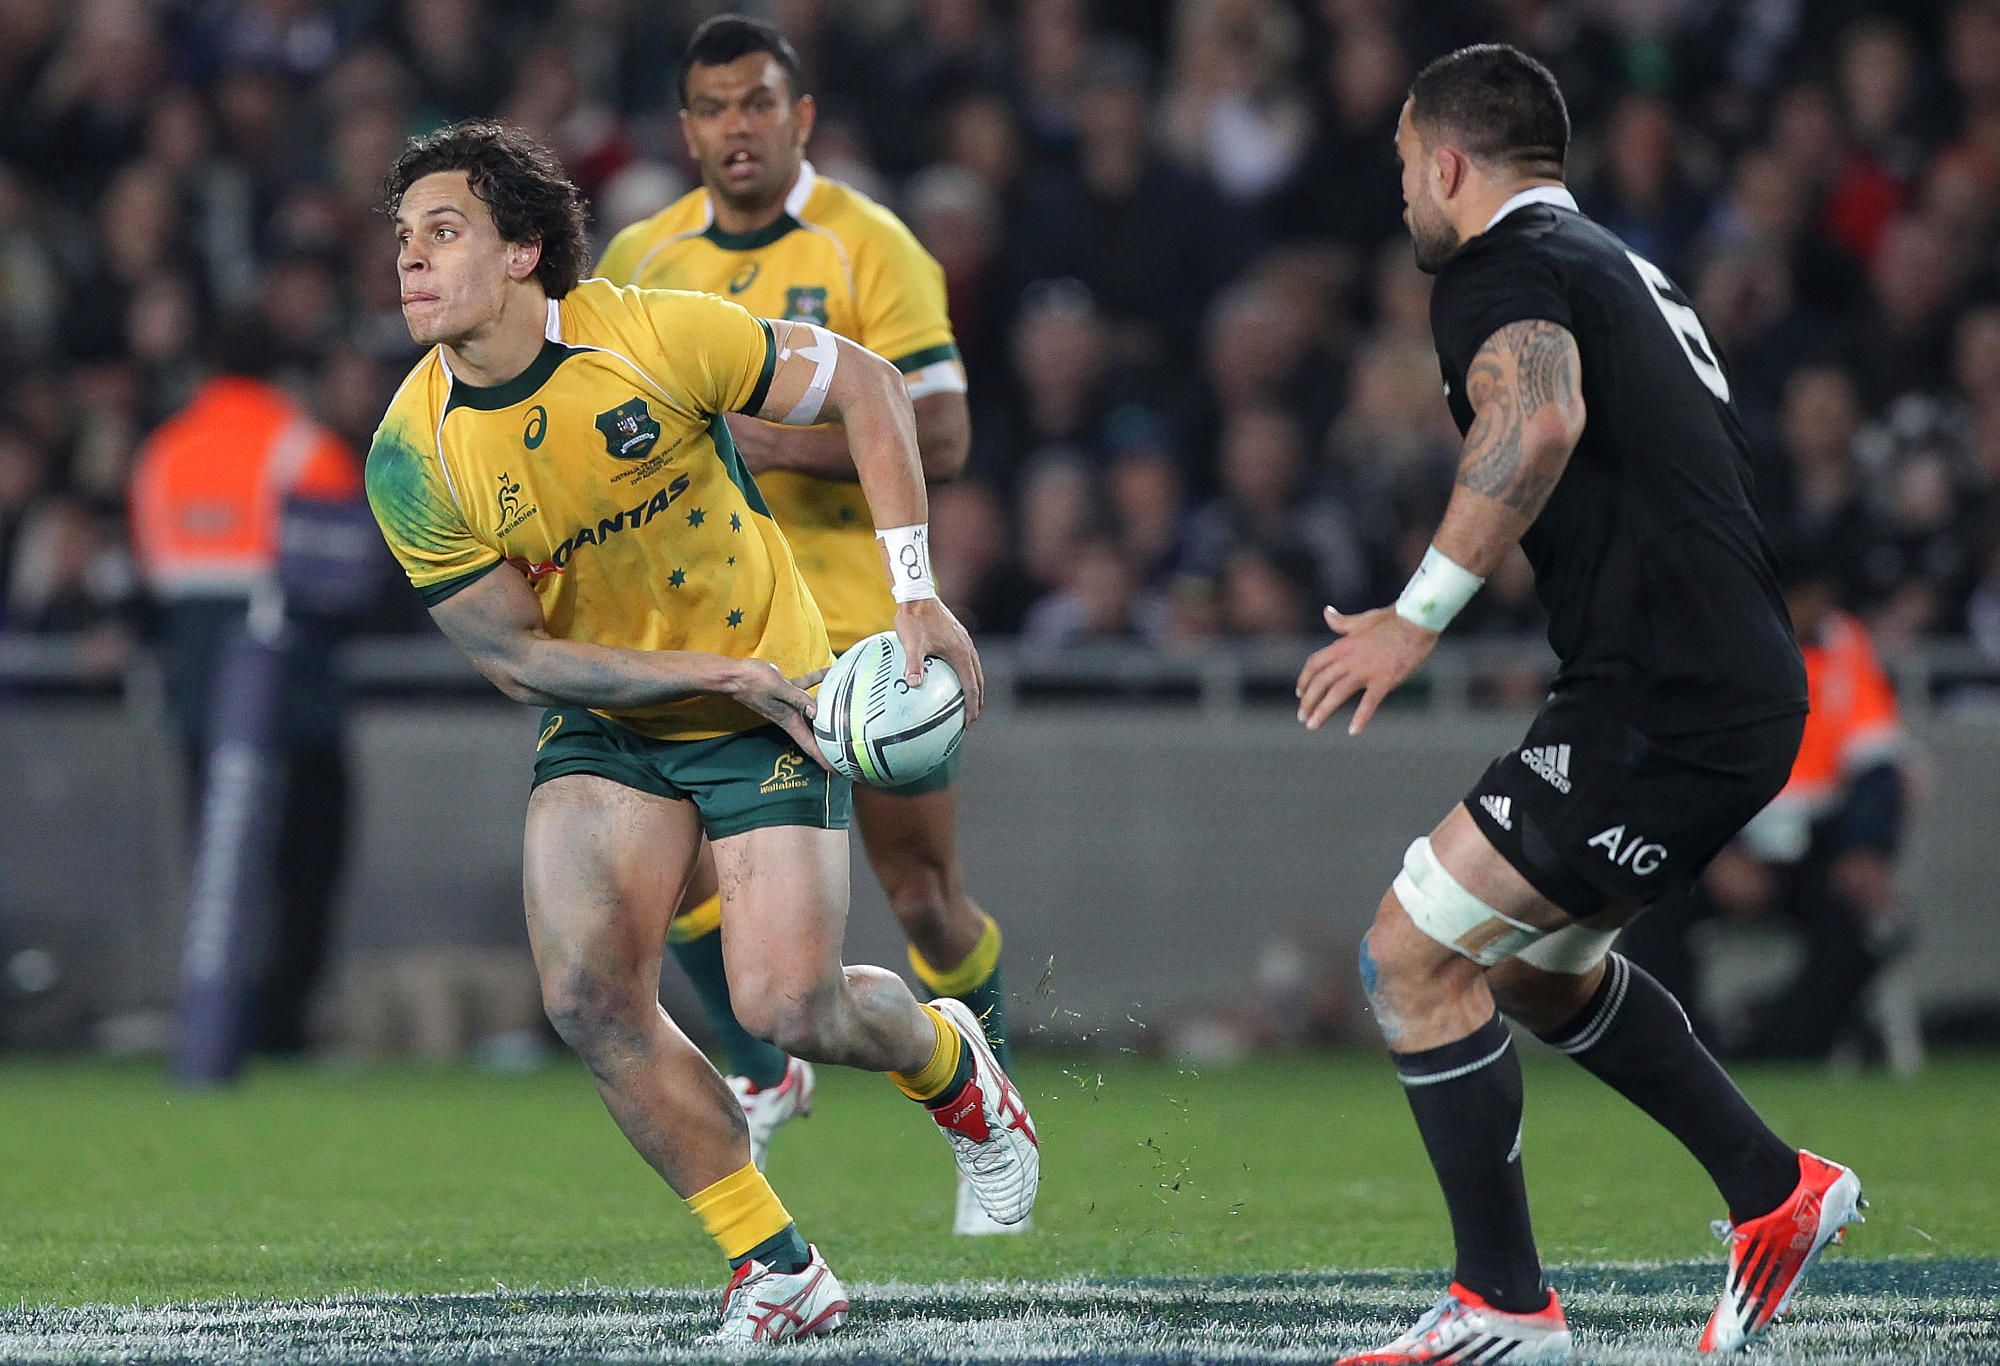 Wallabies All Blacks Live Stream How To Watch Bledisloe Game 2 Online And On Tv 2018 August 25 In Auckland Australia Newzealand Rug All Blacks Rugby Black